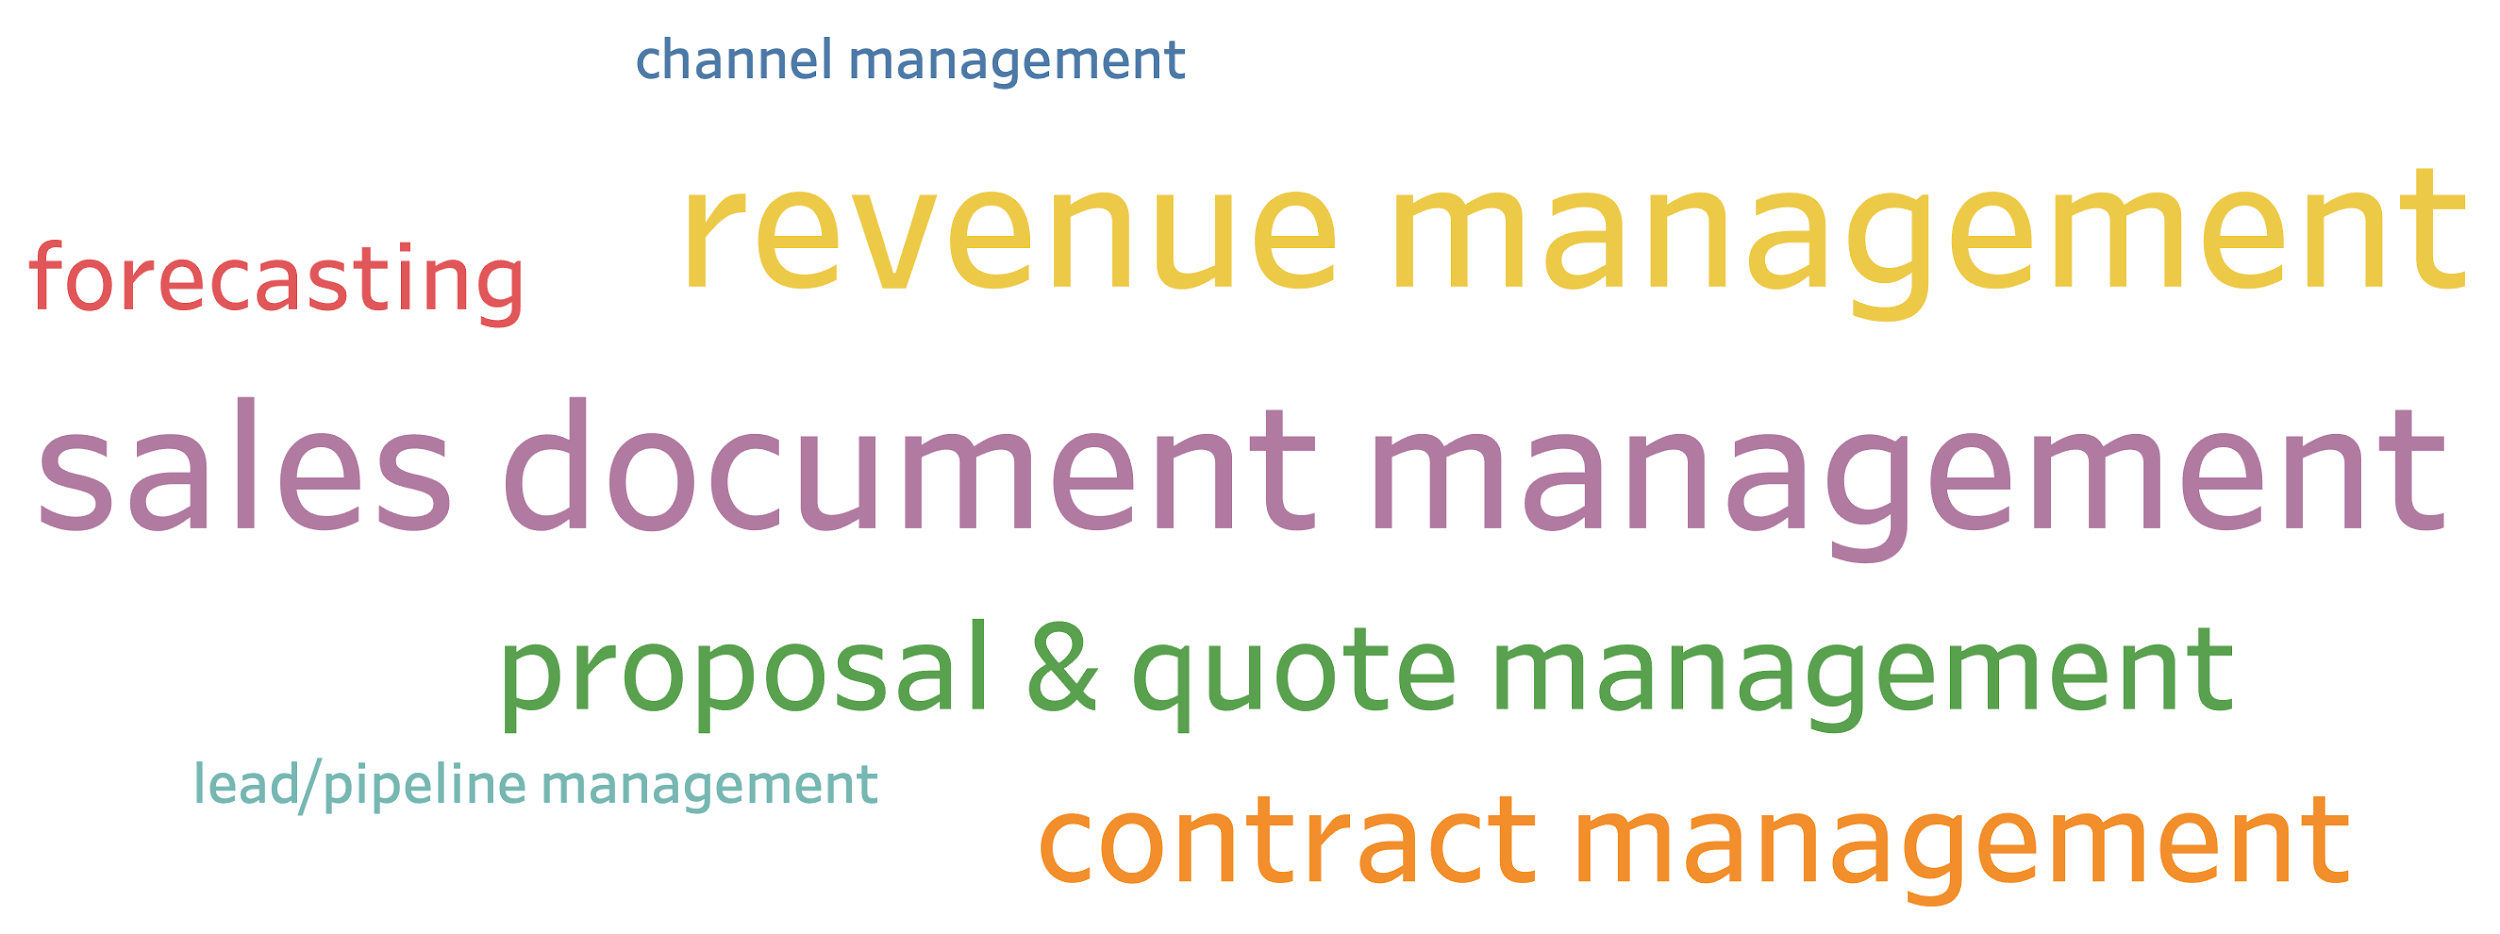 Business Problems Solved by Revenue Management Software